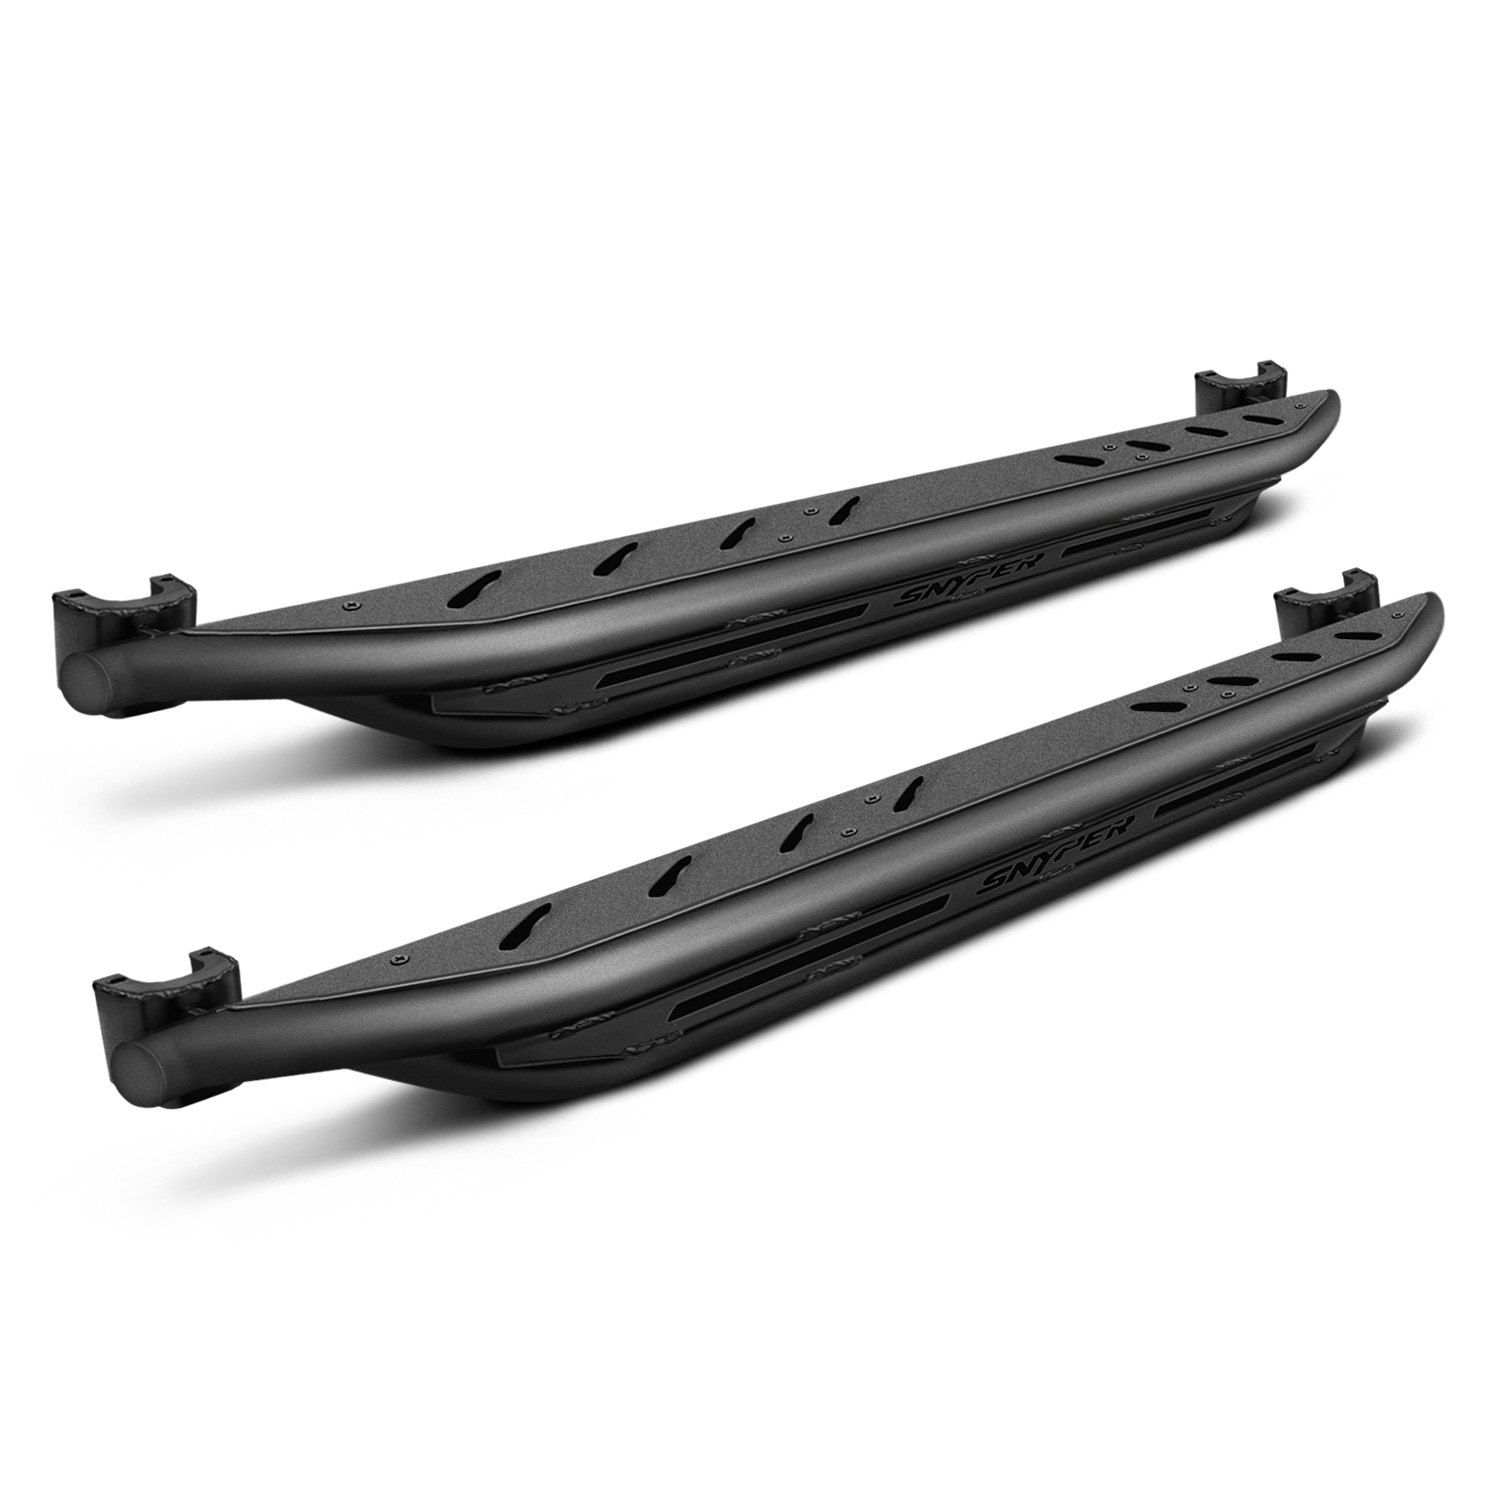 purchase Westin® 42-6005 - Snyper™ Black Triple Tube Rock Rails 2017 for Car & Truck online